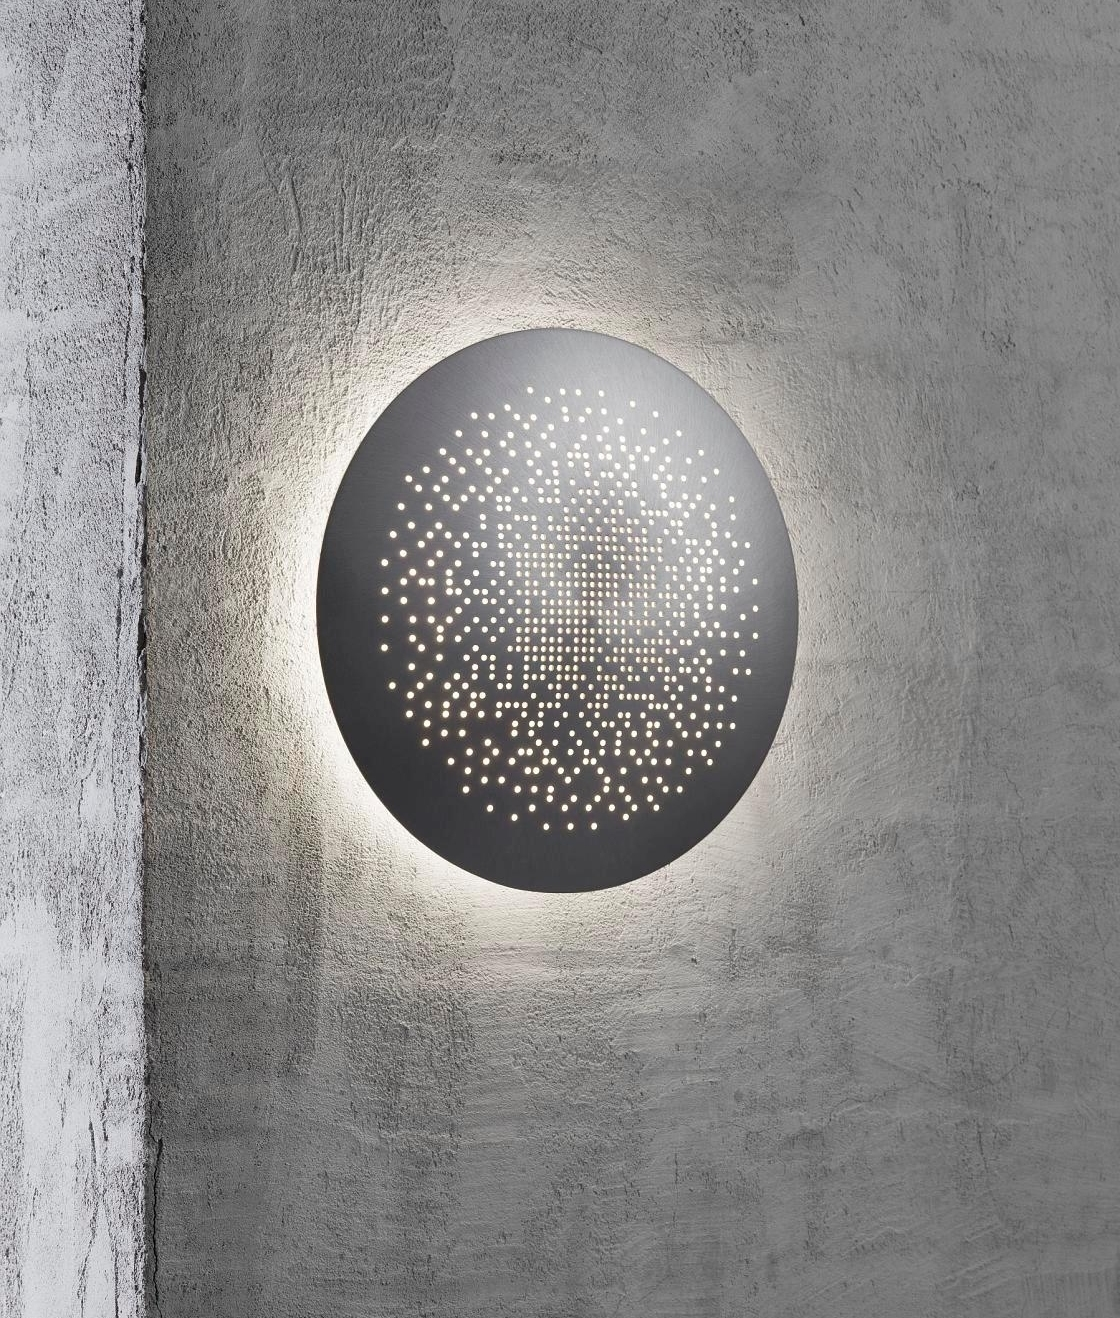 Spherical Eclipse Ip44 Rated Wall Light 3 Finishes Amp 2 Sizes